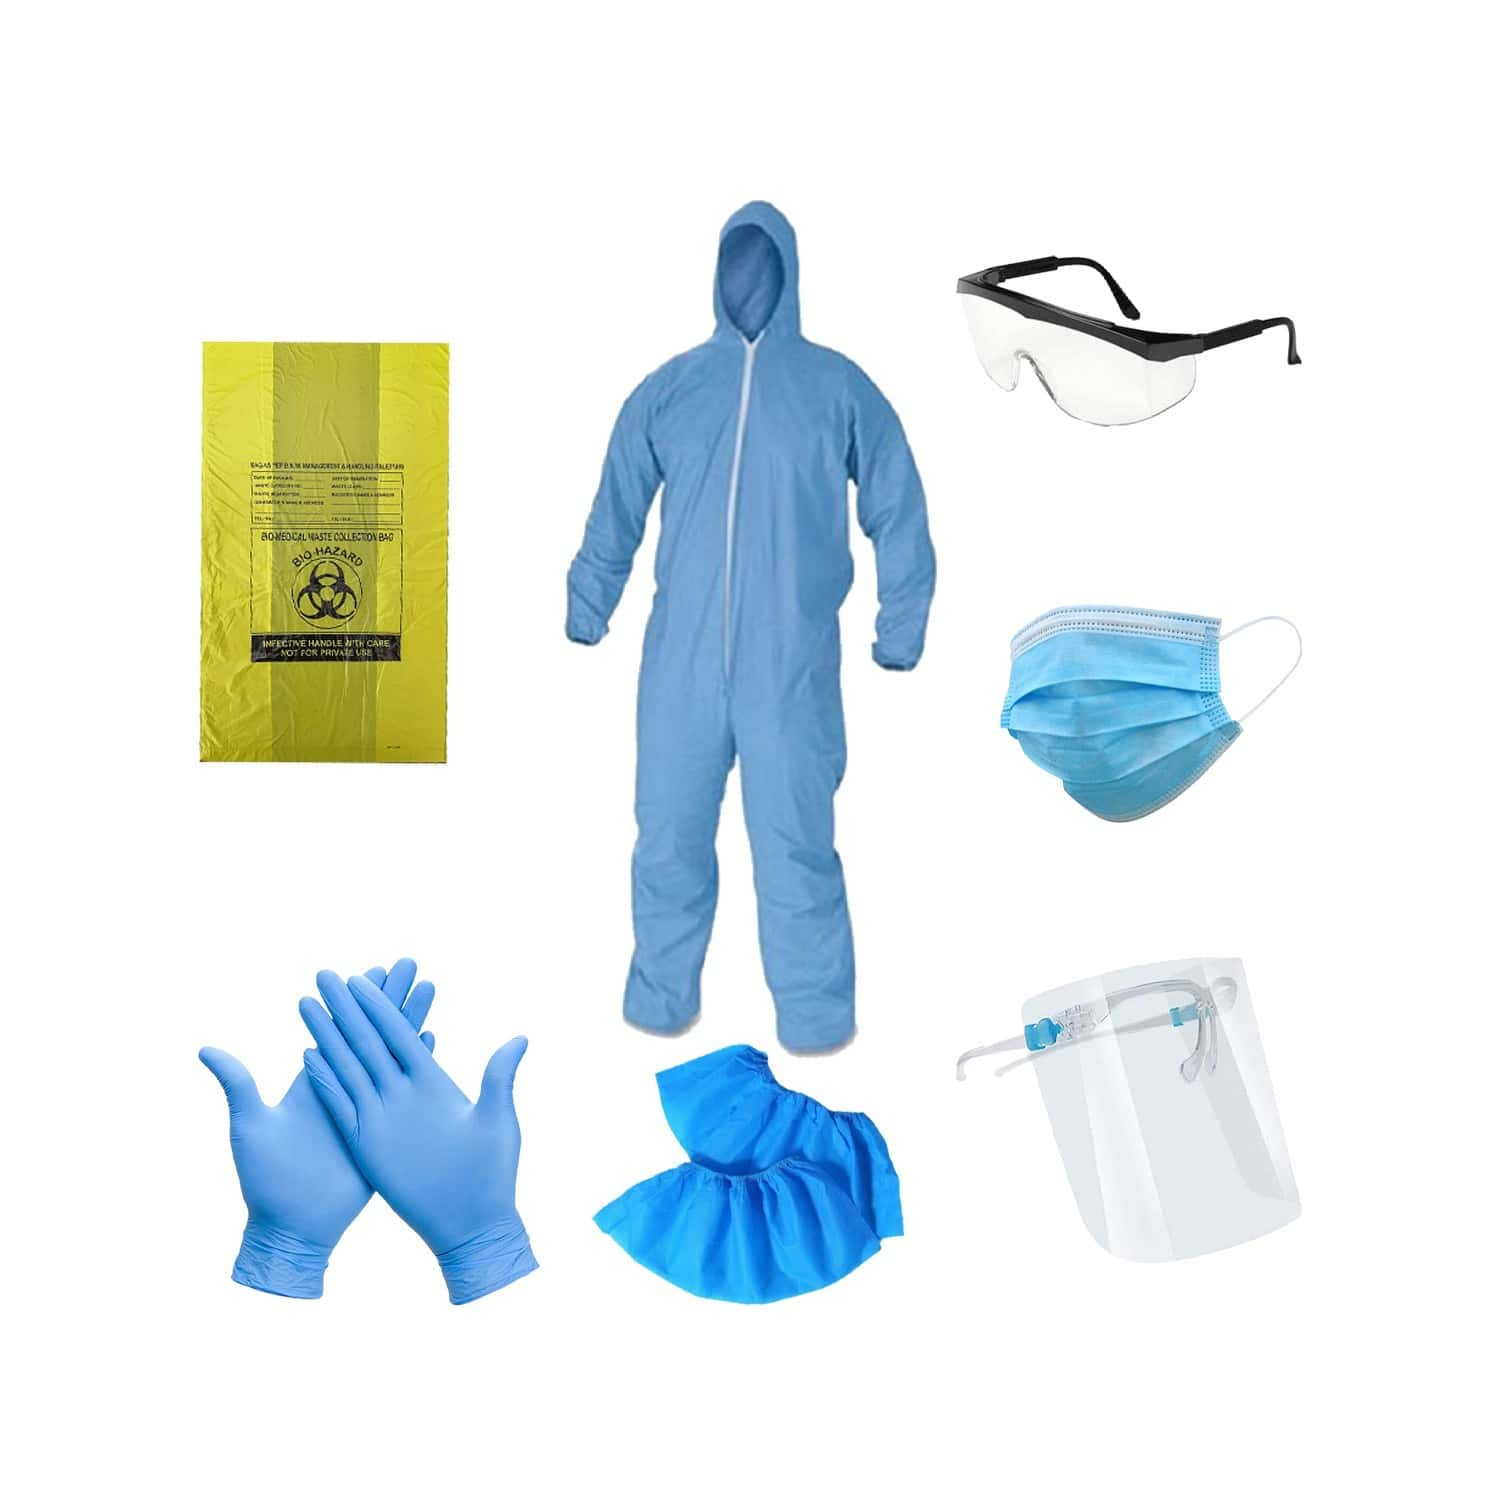 Personal Protective Equipment Kit (ppe) By Sac Careplus & Daiwik's